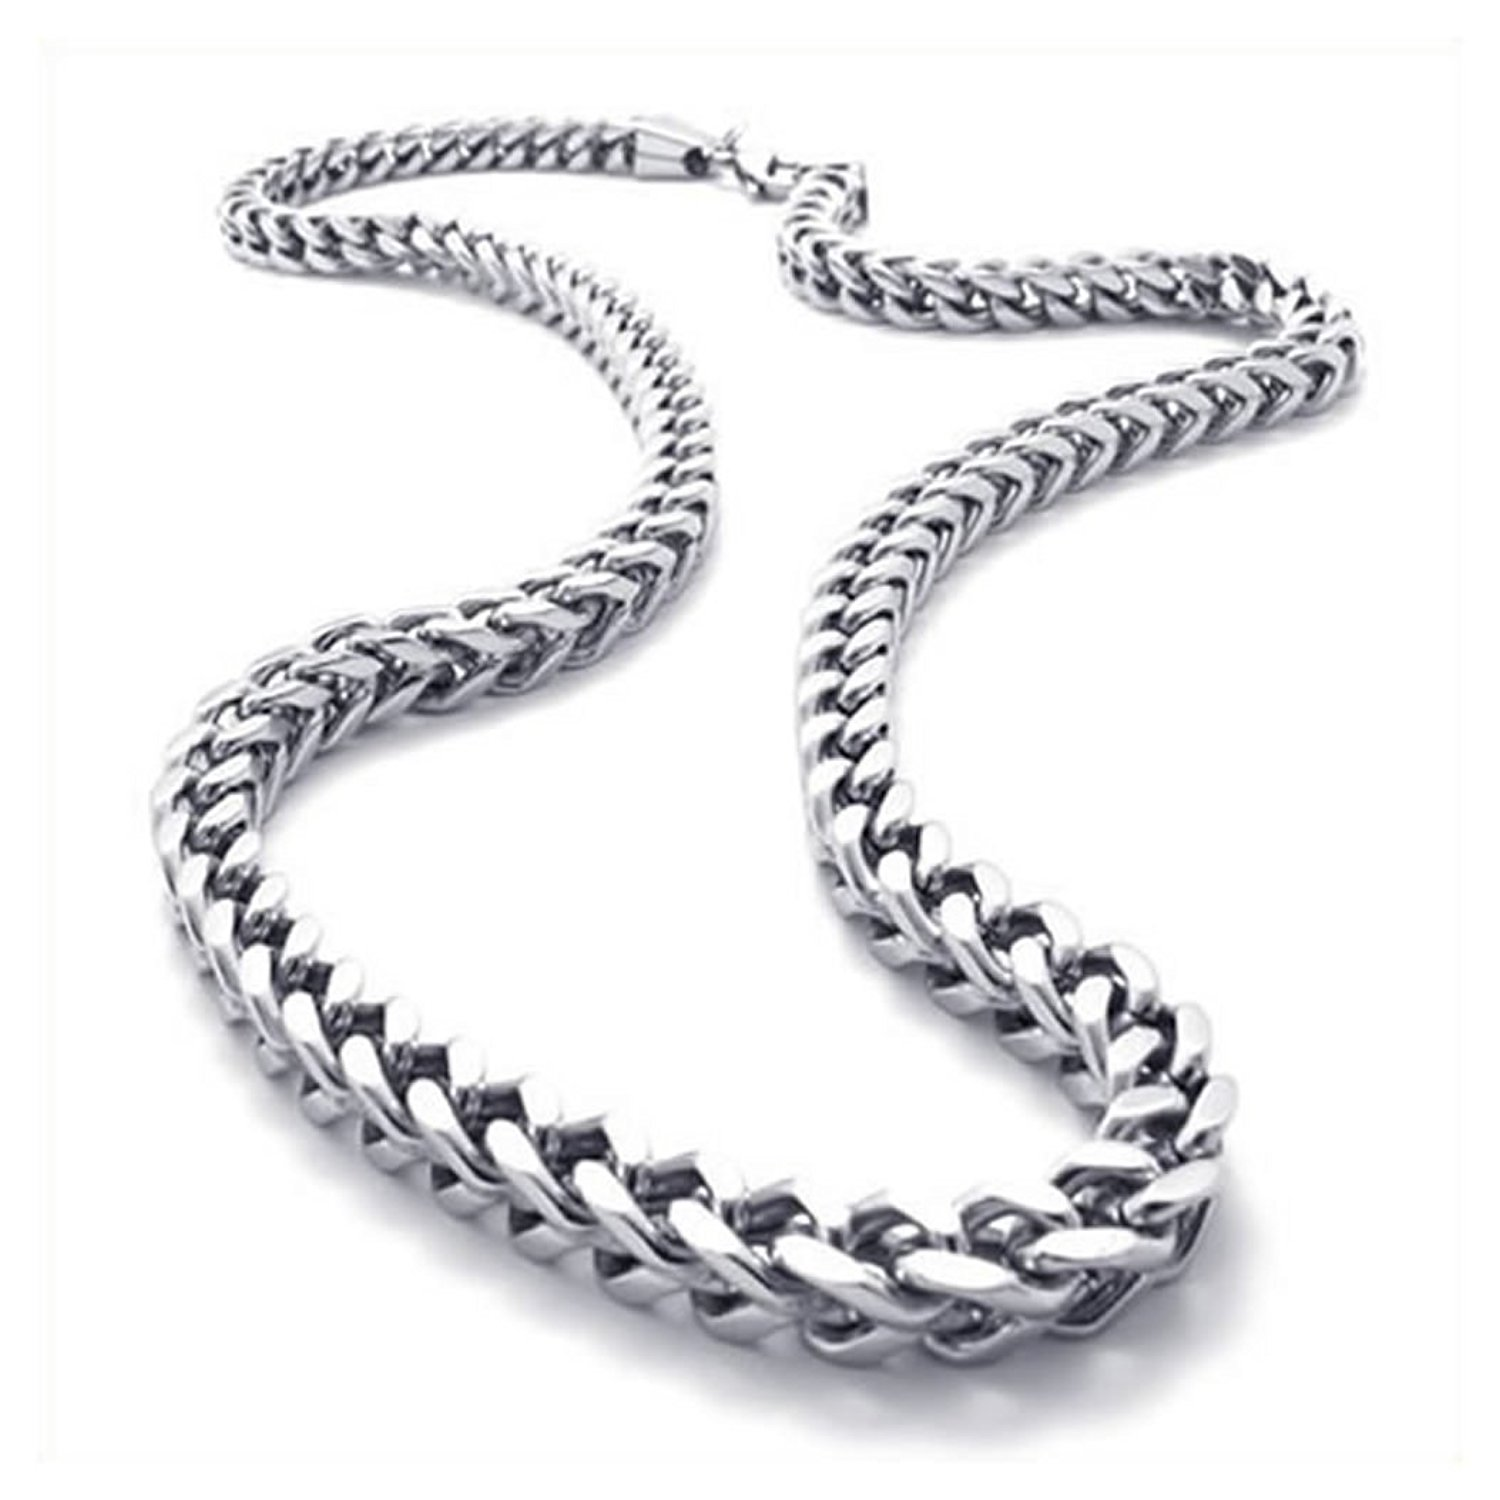 KONOV Stainless Steel Mens Necklace Link Chain - Silver - Length 22 inch | Amazon.com